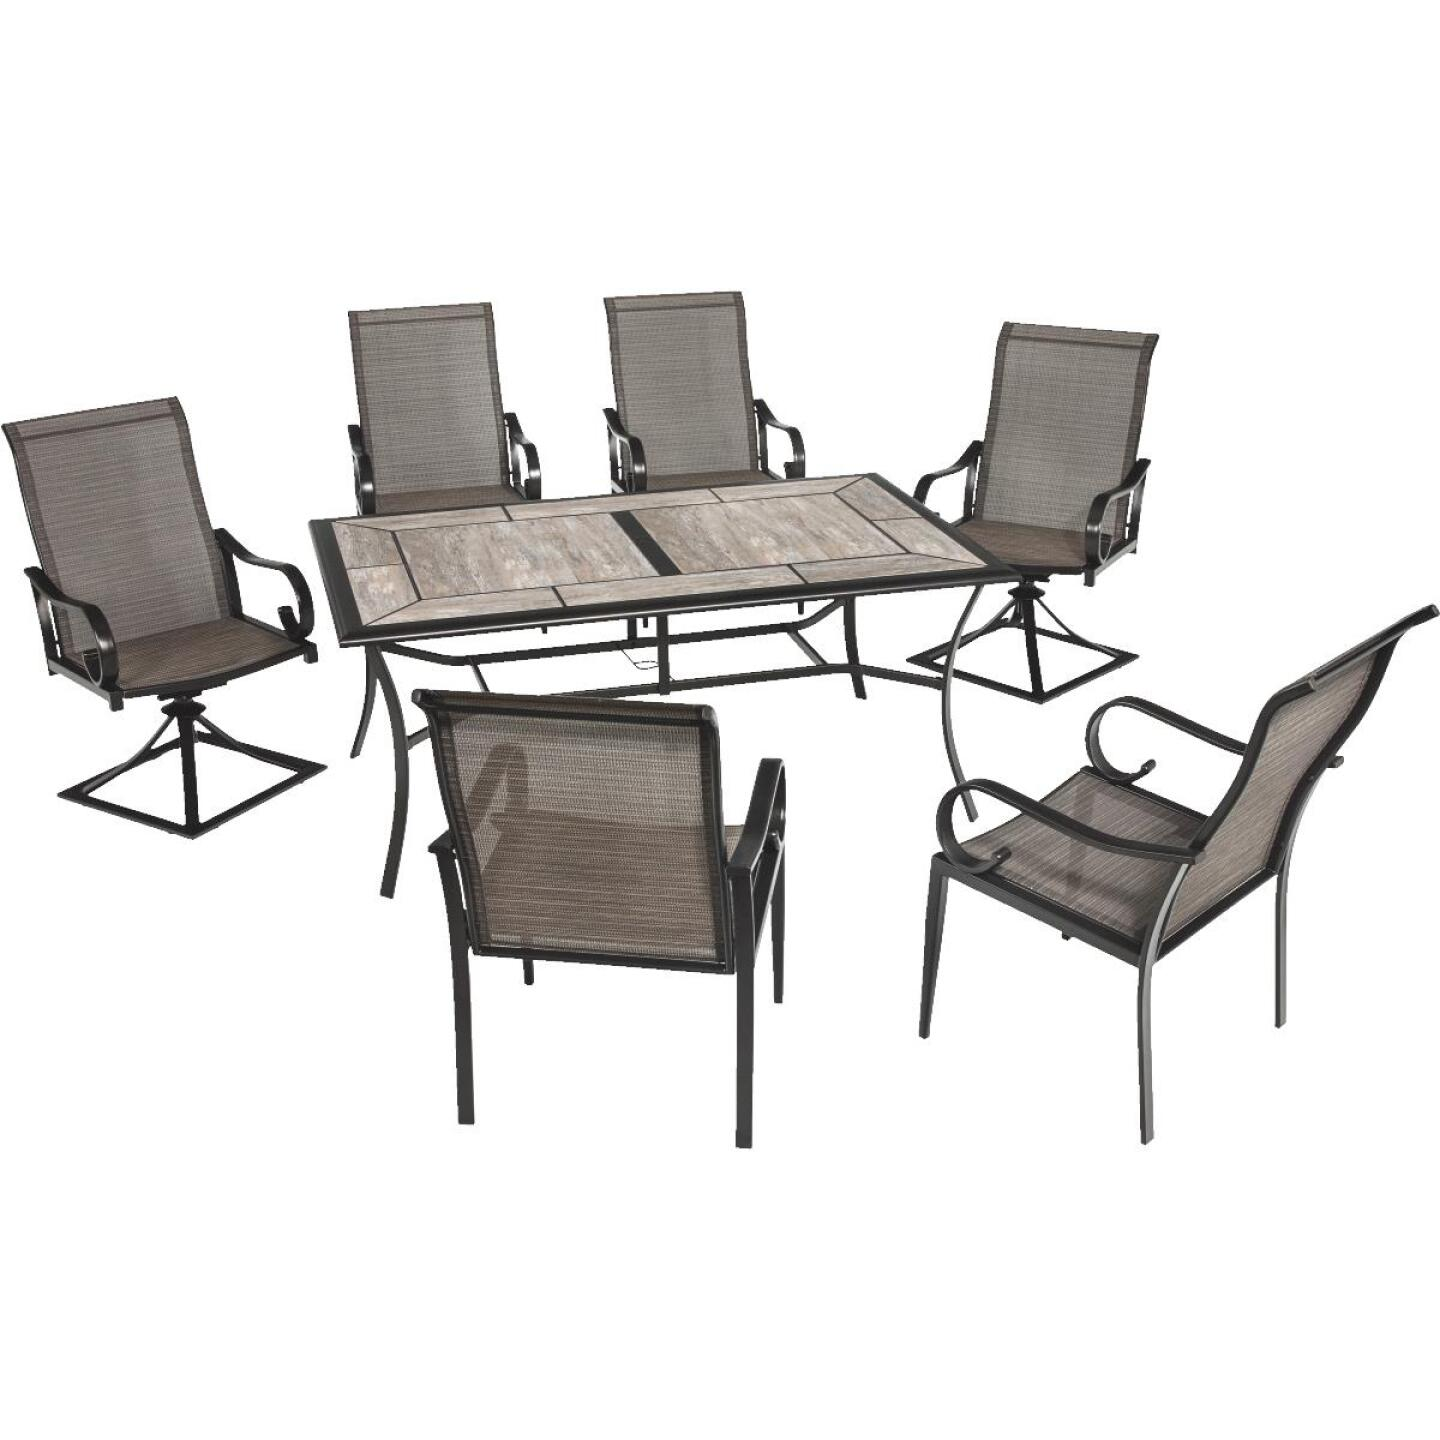 Outdoor Expressions Berkshire 7-Piece Dining Set Image 334